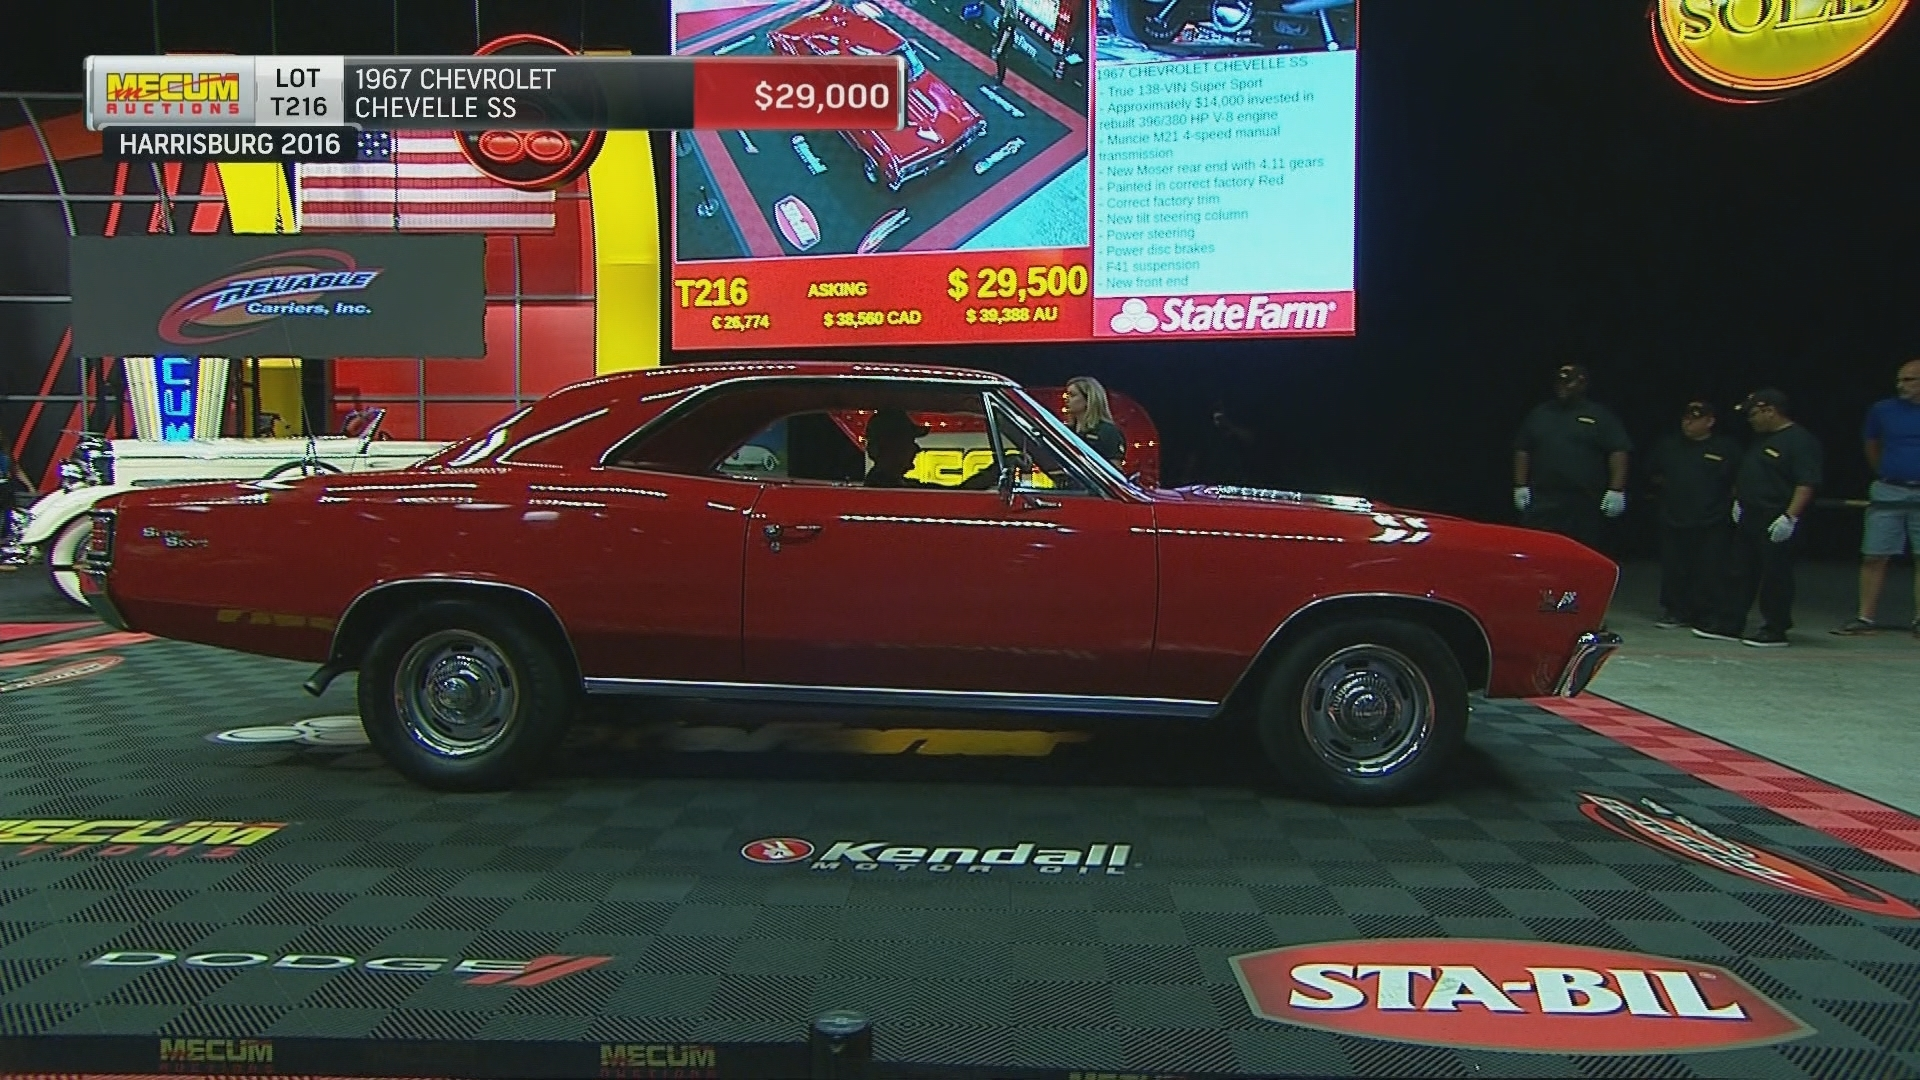 1967 Chevrolet Chevelle Ss Sells For 28 500 At Mecum Auctions Nbc